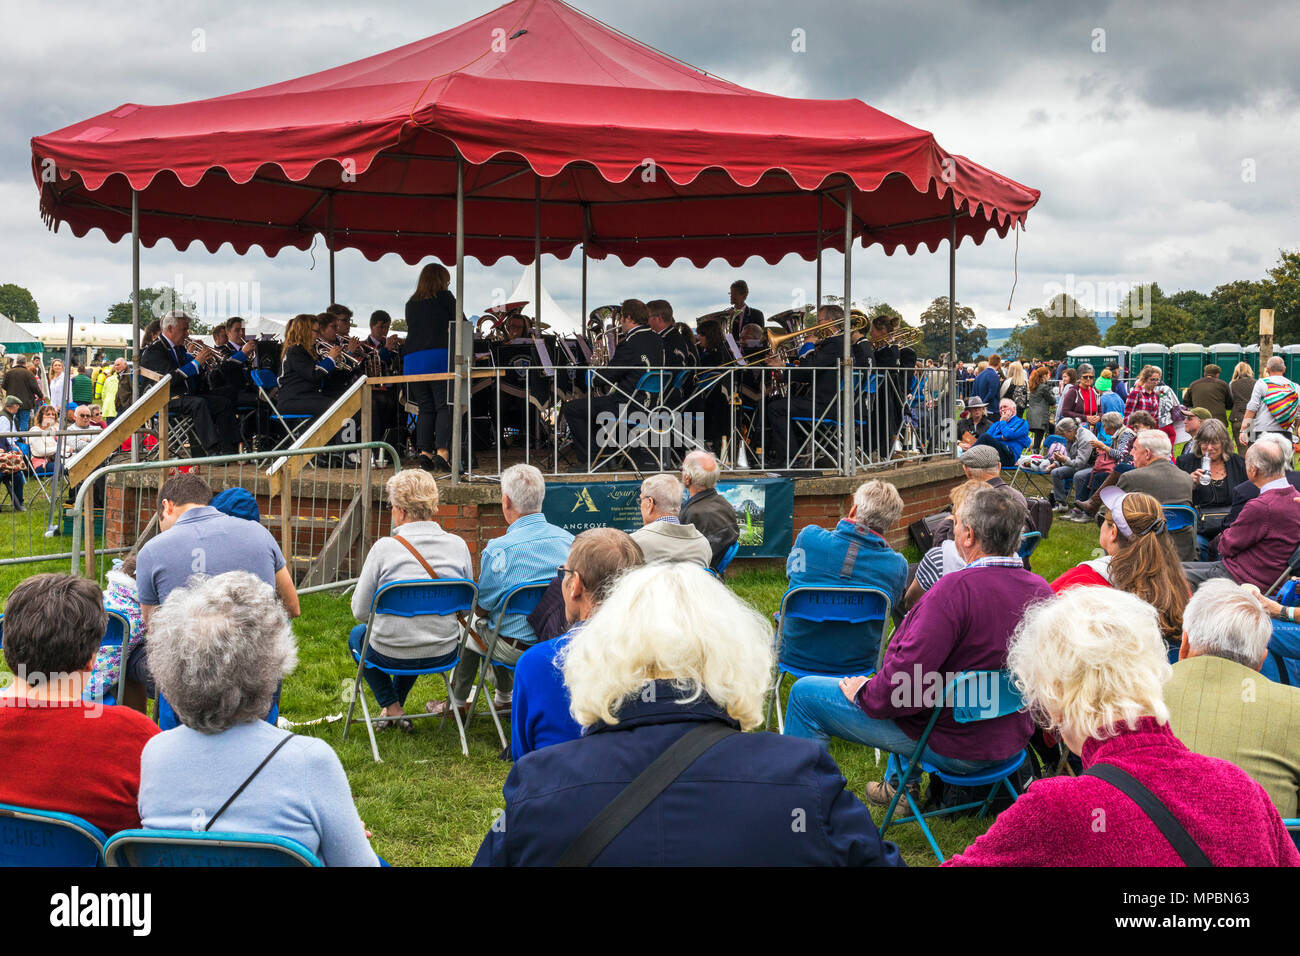 Bandstand and spectators at Stokesley Show, North Yorkshire, England, UK - Stock Image